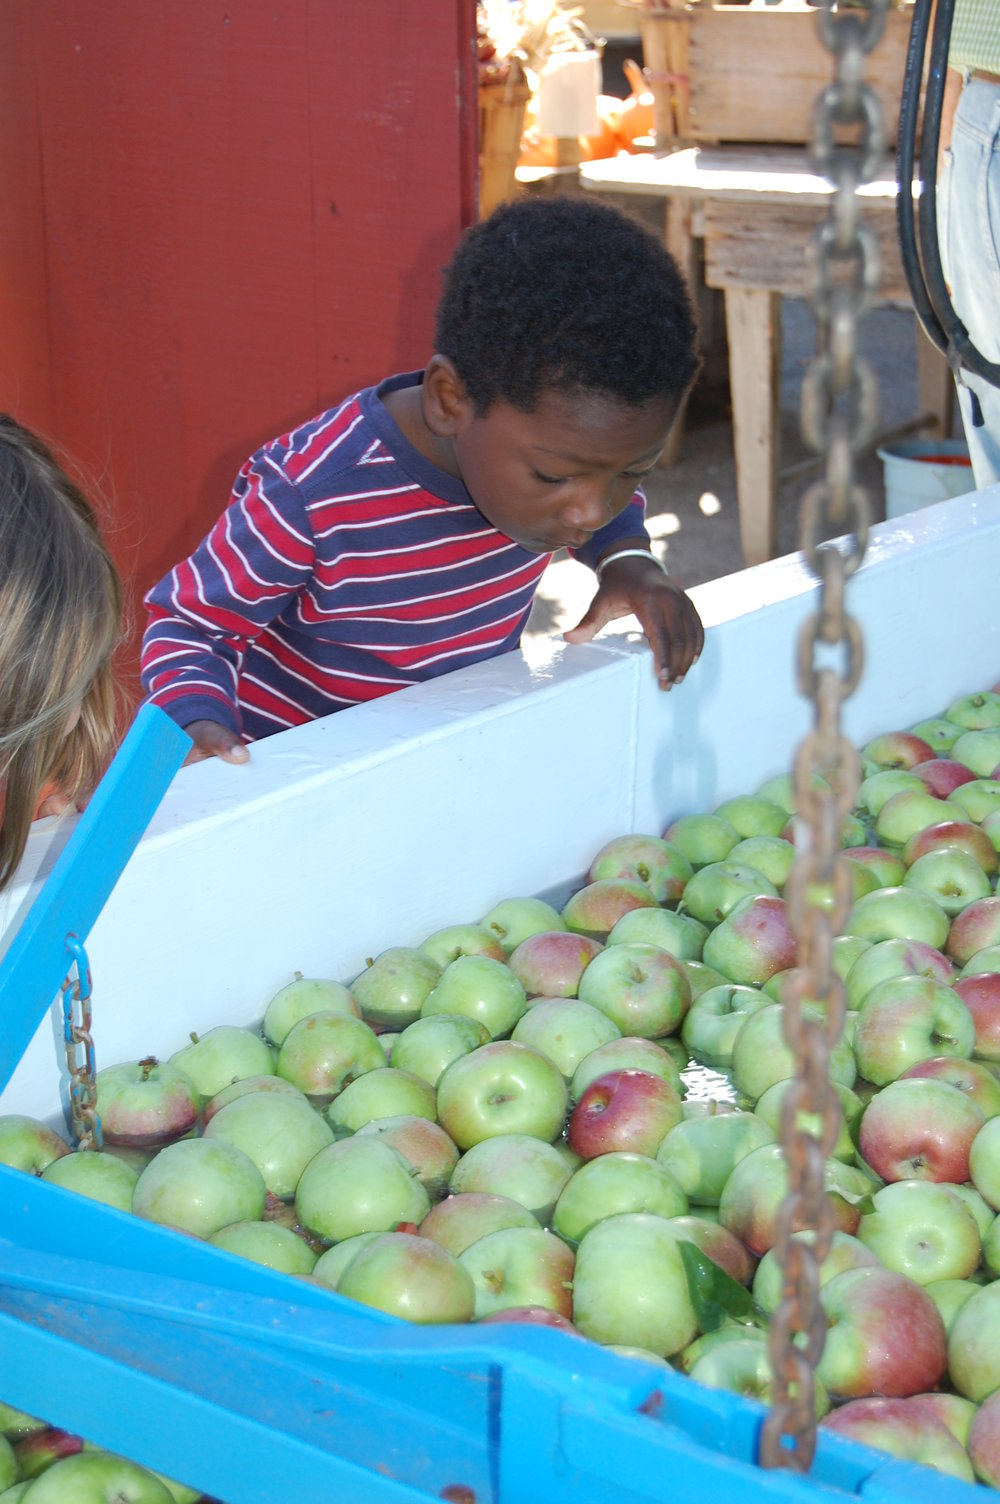 The Hacketts now sell all of their apples and cider at their on-farm store on South Street, and host thousands of children on school field trips each fall.